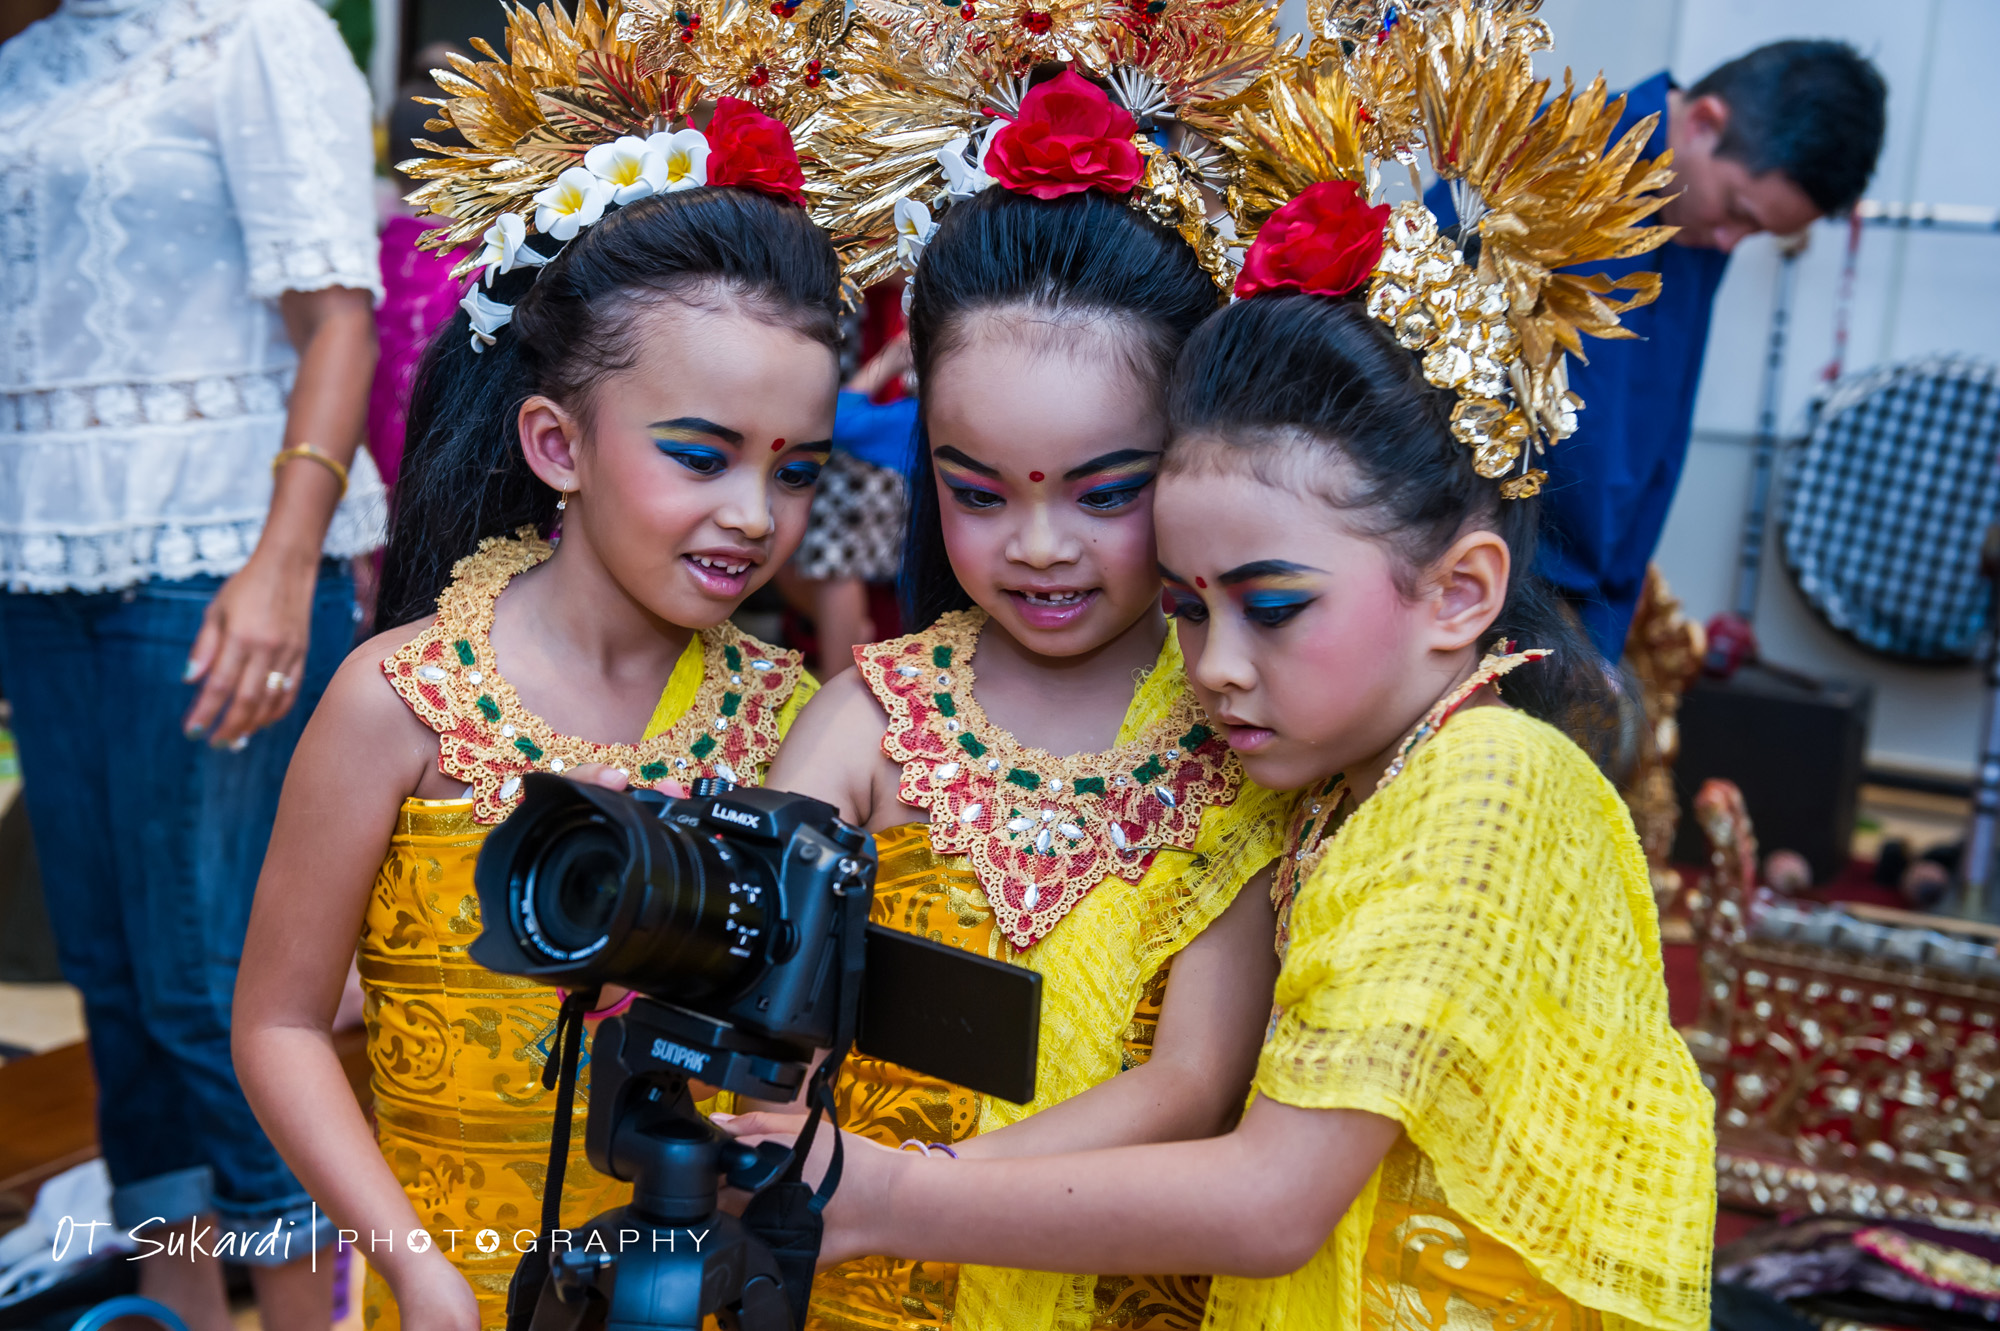 Young girls in costume look at photos on a camera